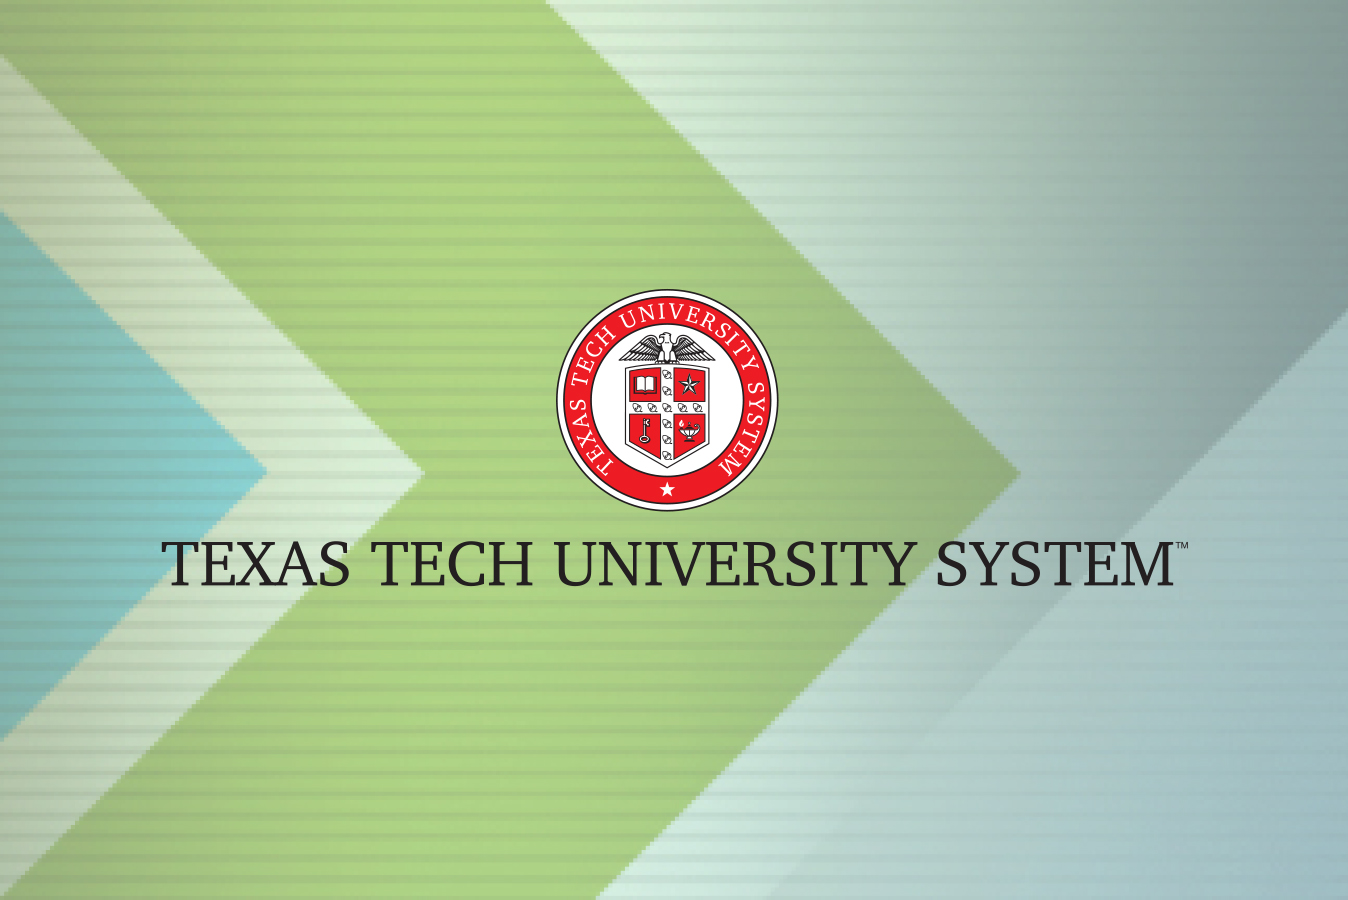 Governor Greg Abbott Names Texas Tech University Board Of Regents Appointments